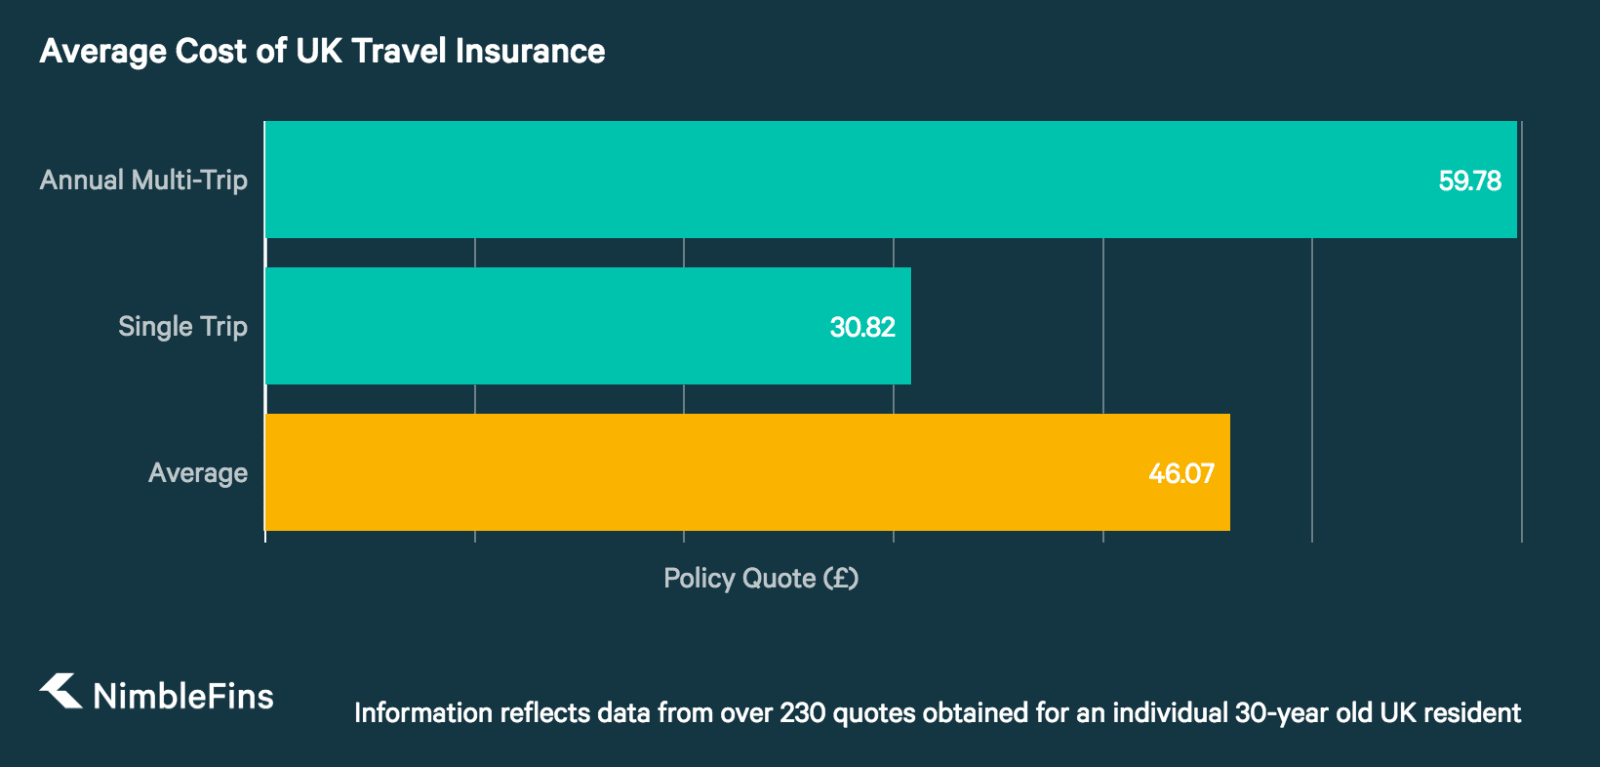 chart Comparing Average Costs of Single and Annual Multi-Trip UK Travel Insurance